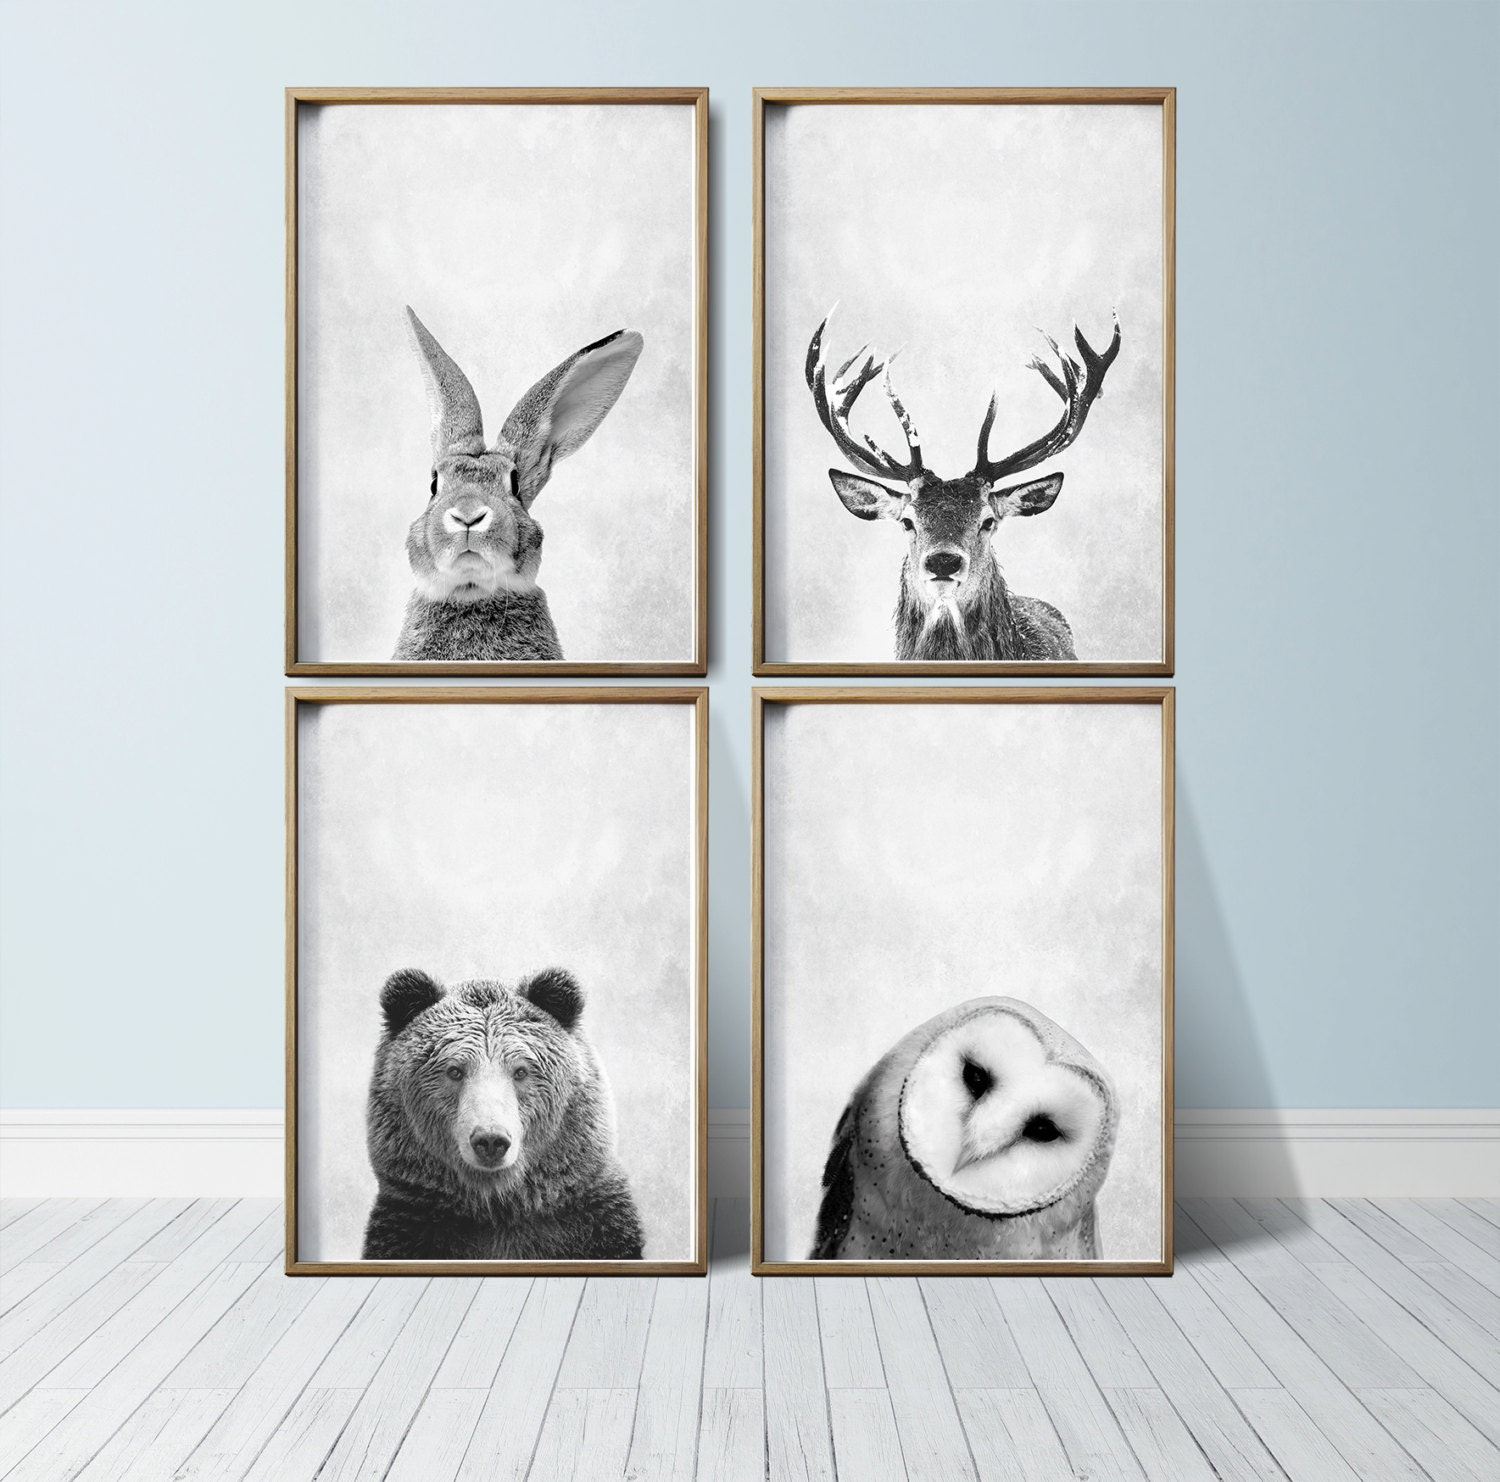 Prints For Wall Decor : Nursery wall art animal print woodland decor